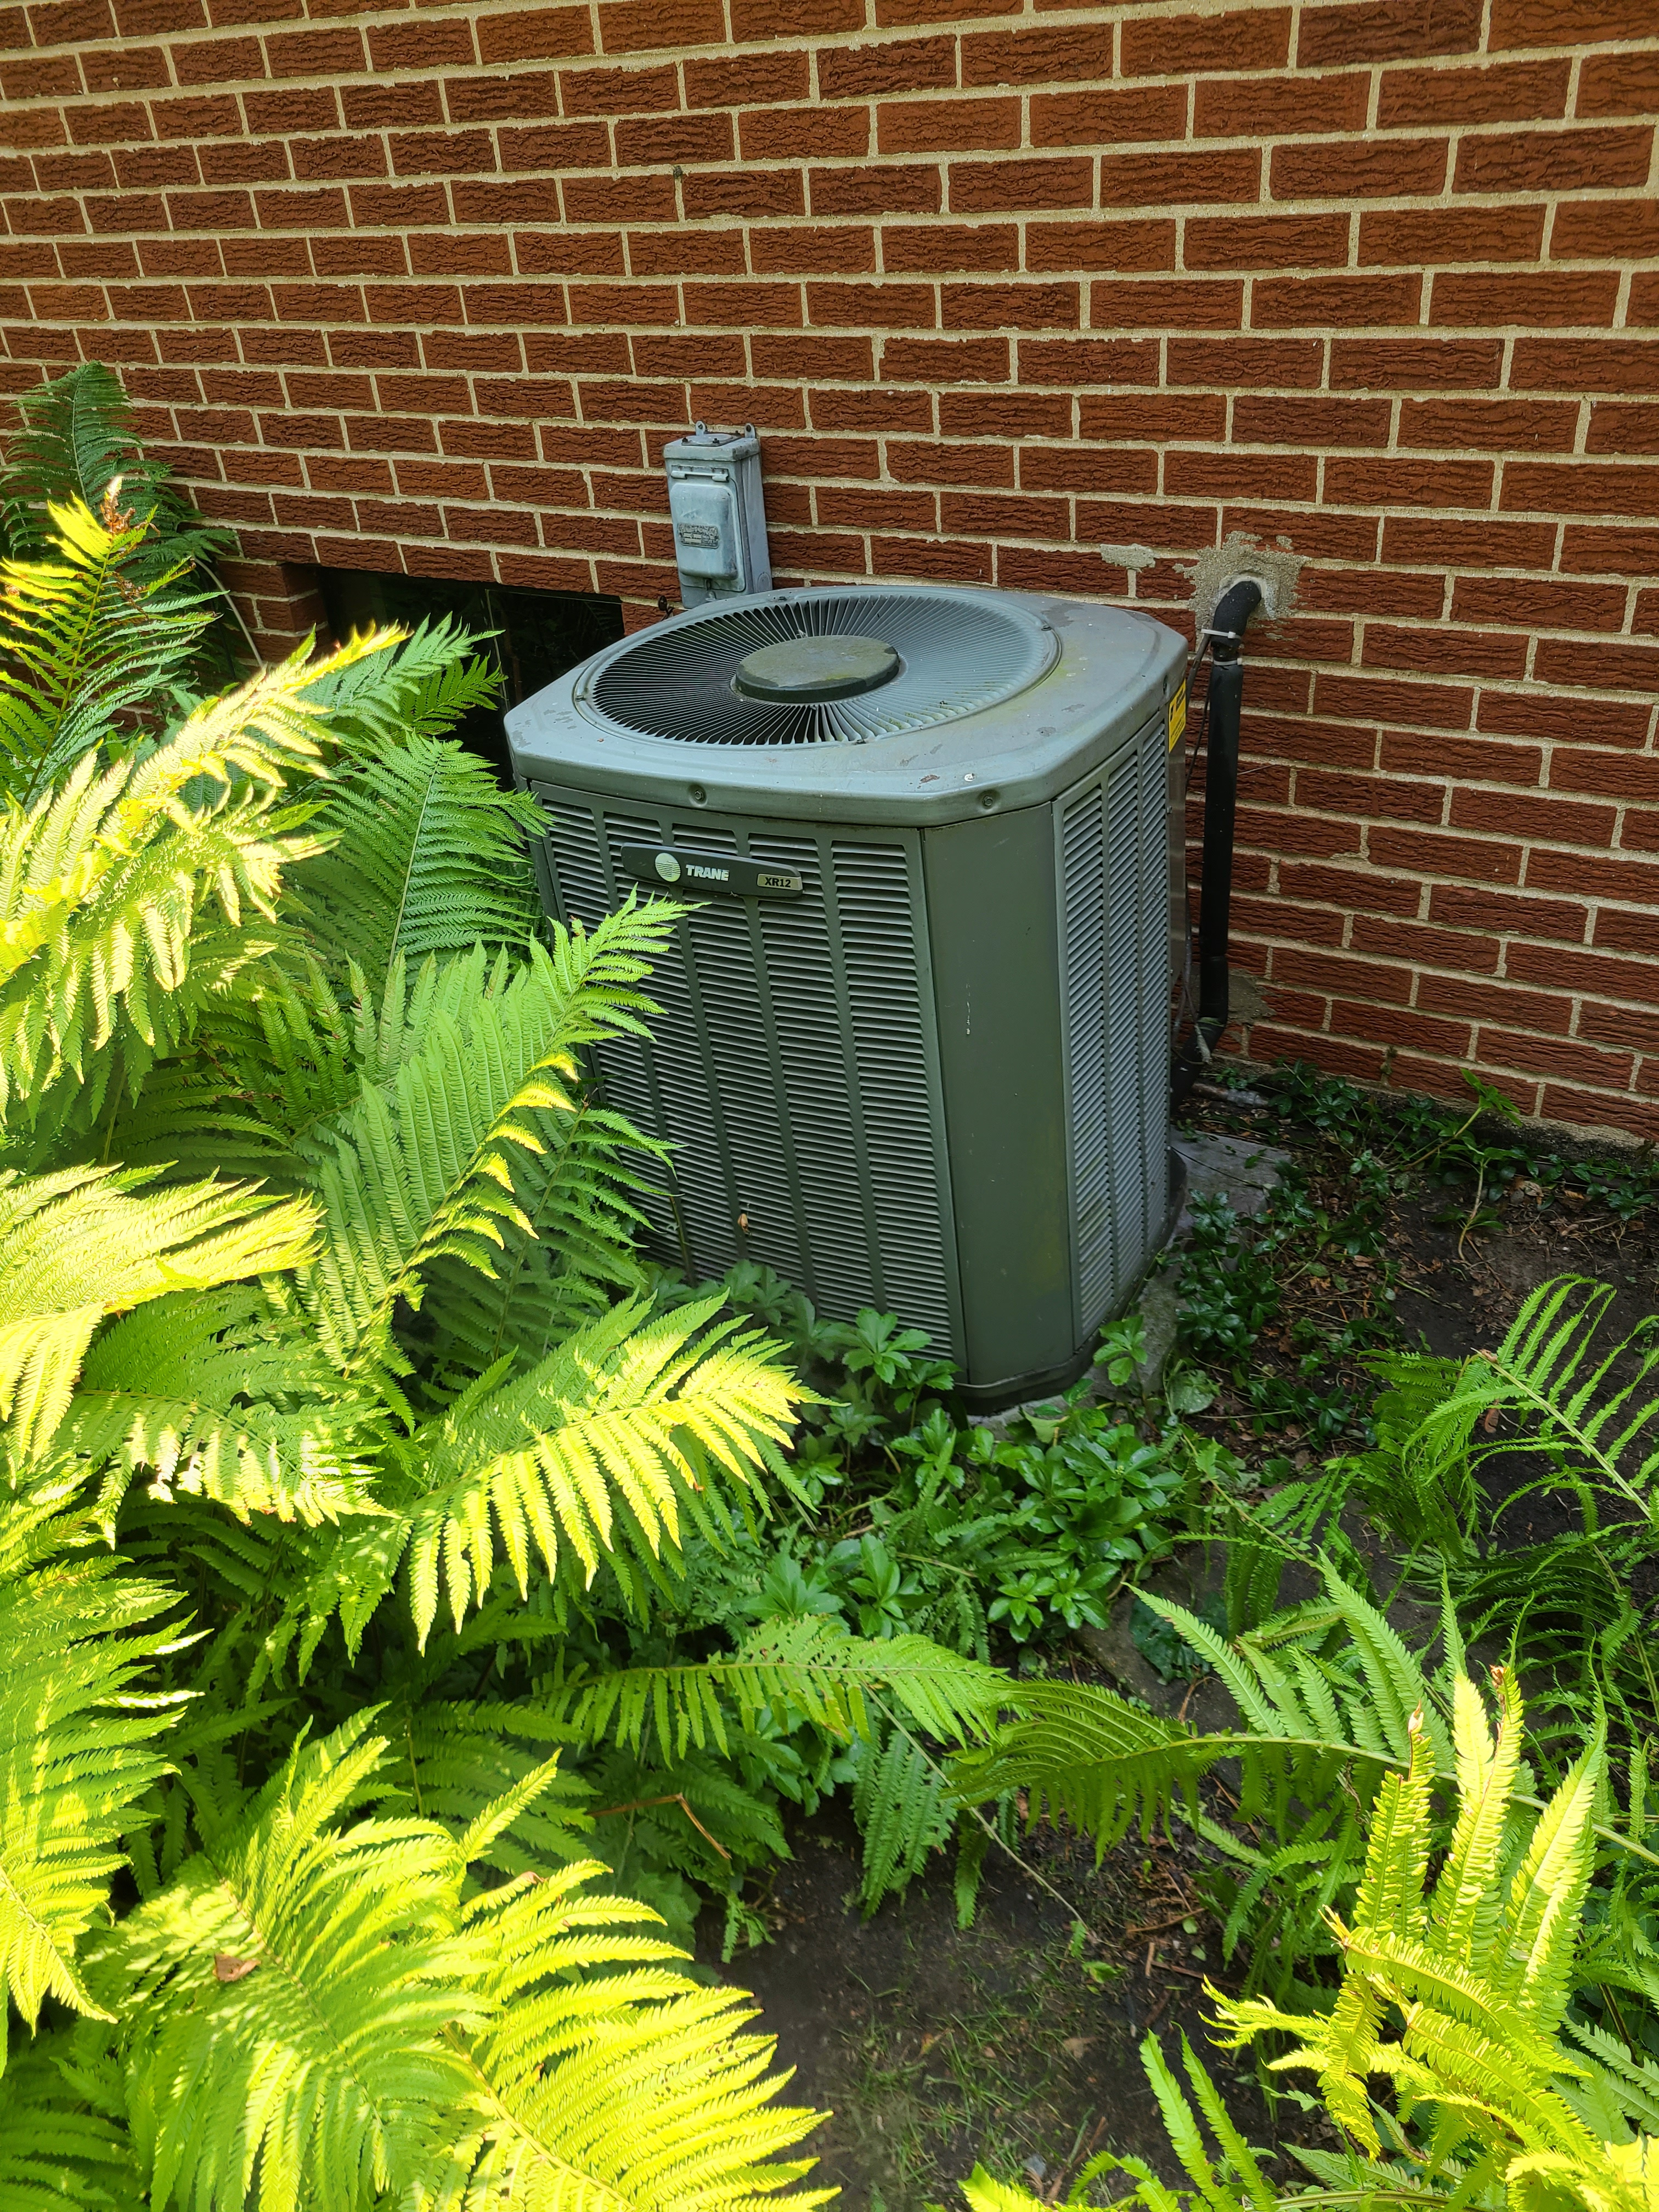 Trane r22 system cleaned and tested